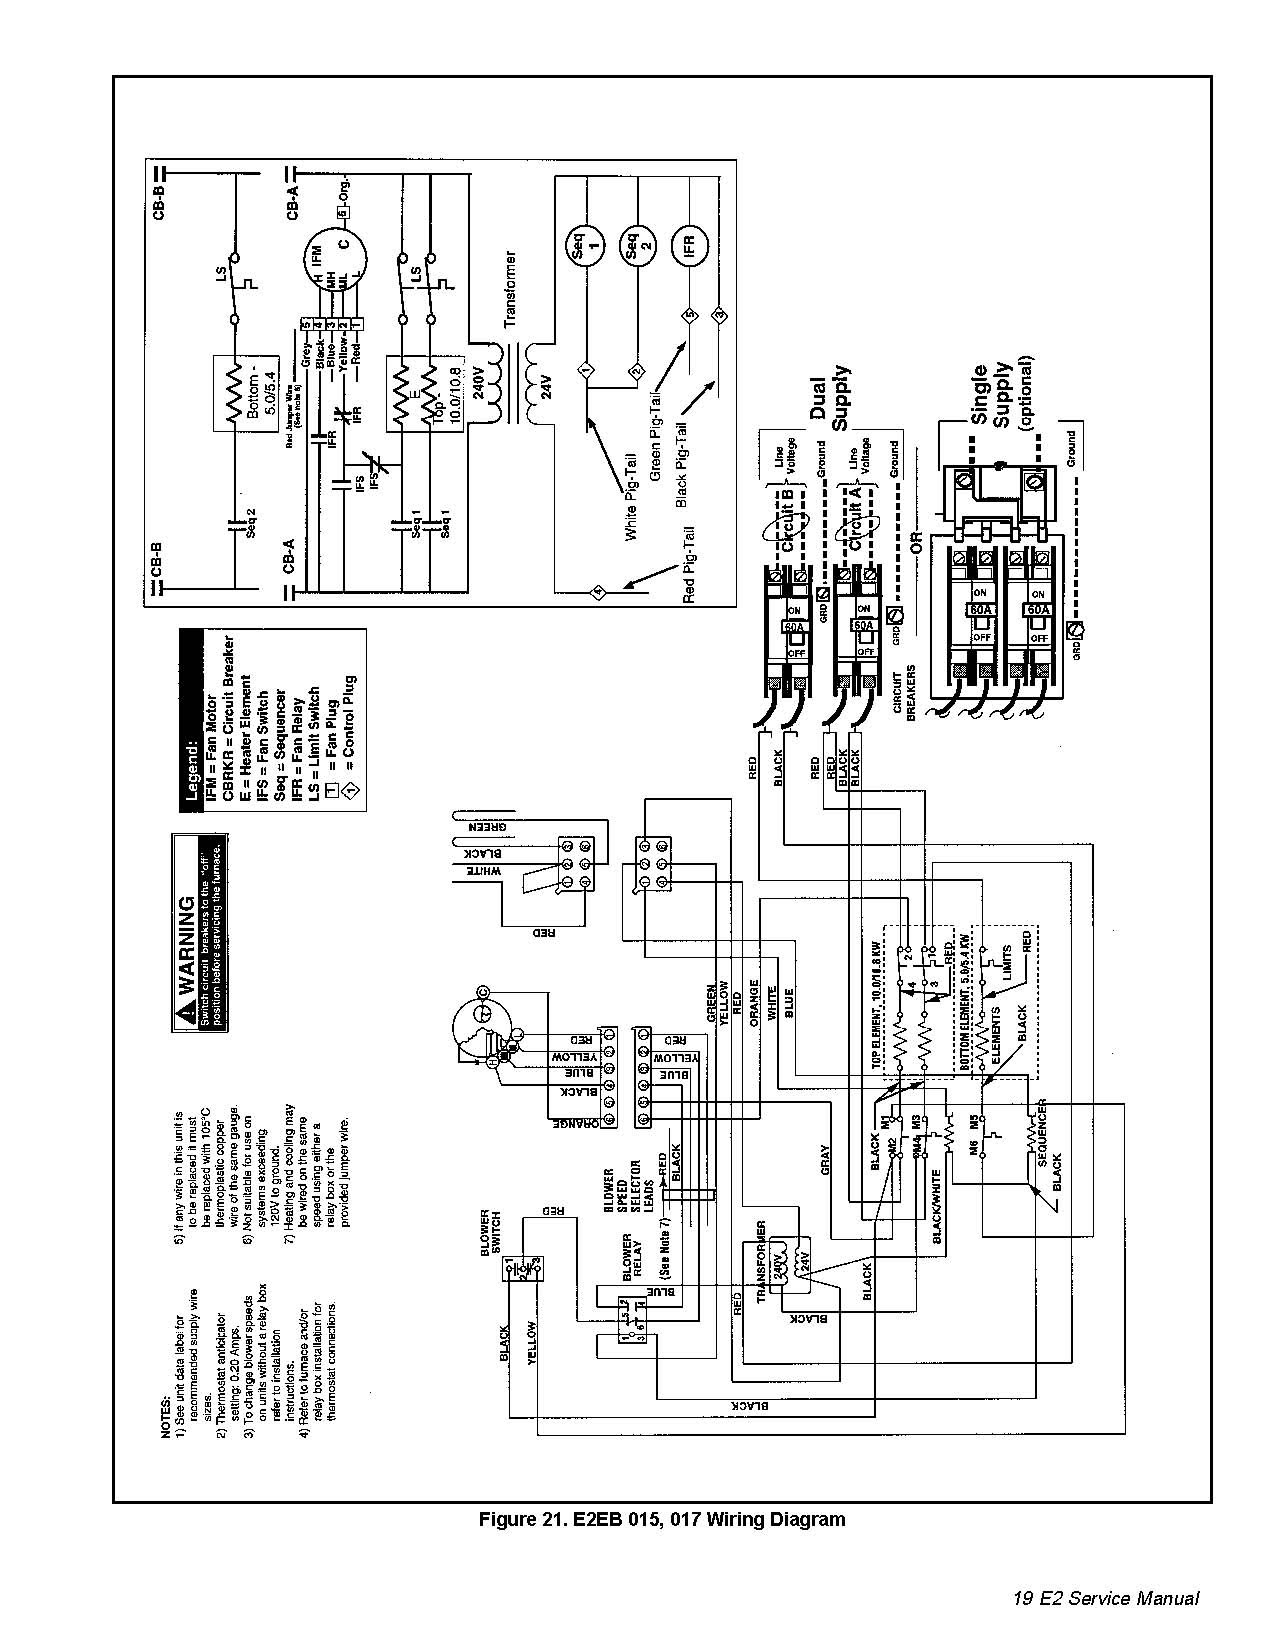 gallery of miller electric furnace wiring diagram download rh  worldvisionsummerfest com Old Oil Furnace Wiring Diagram Old Oil Furnace  Wiring Diagram